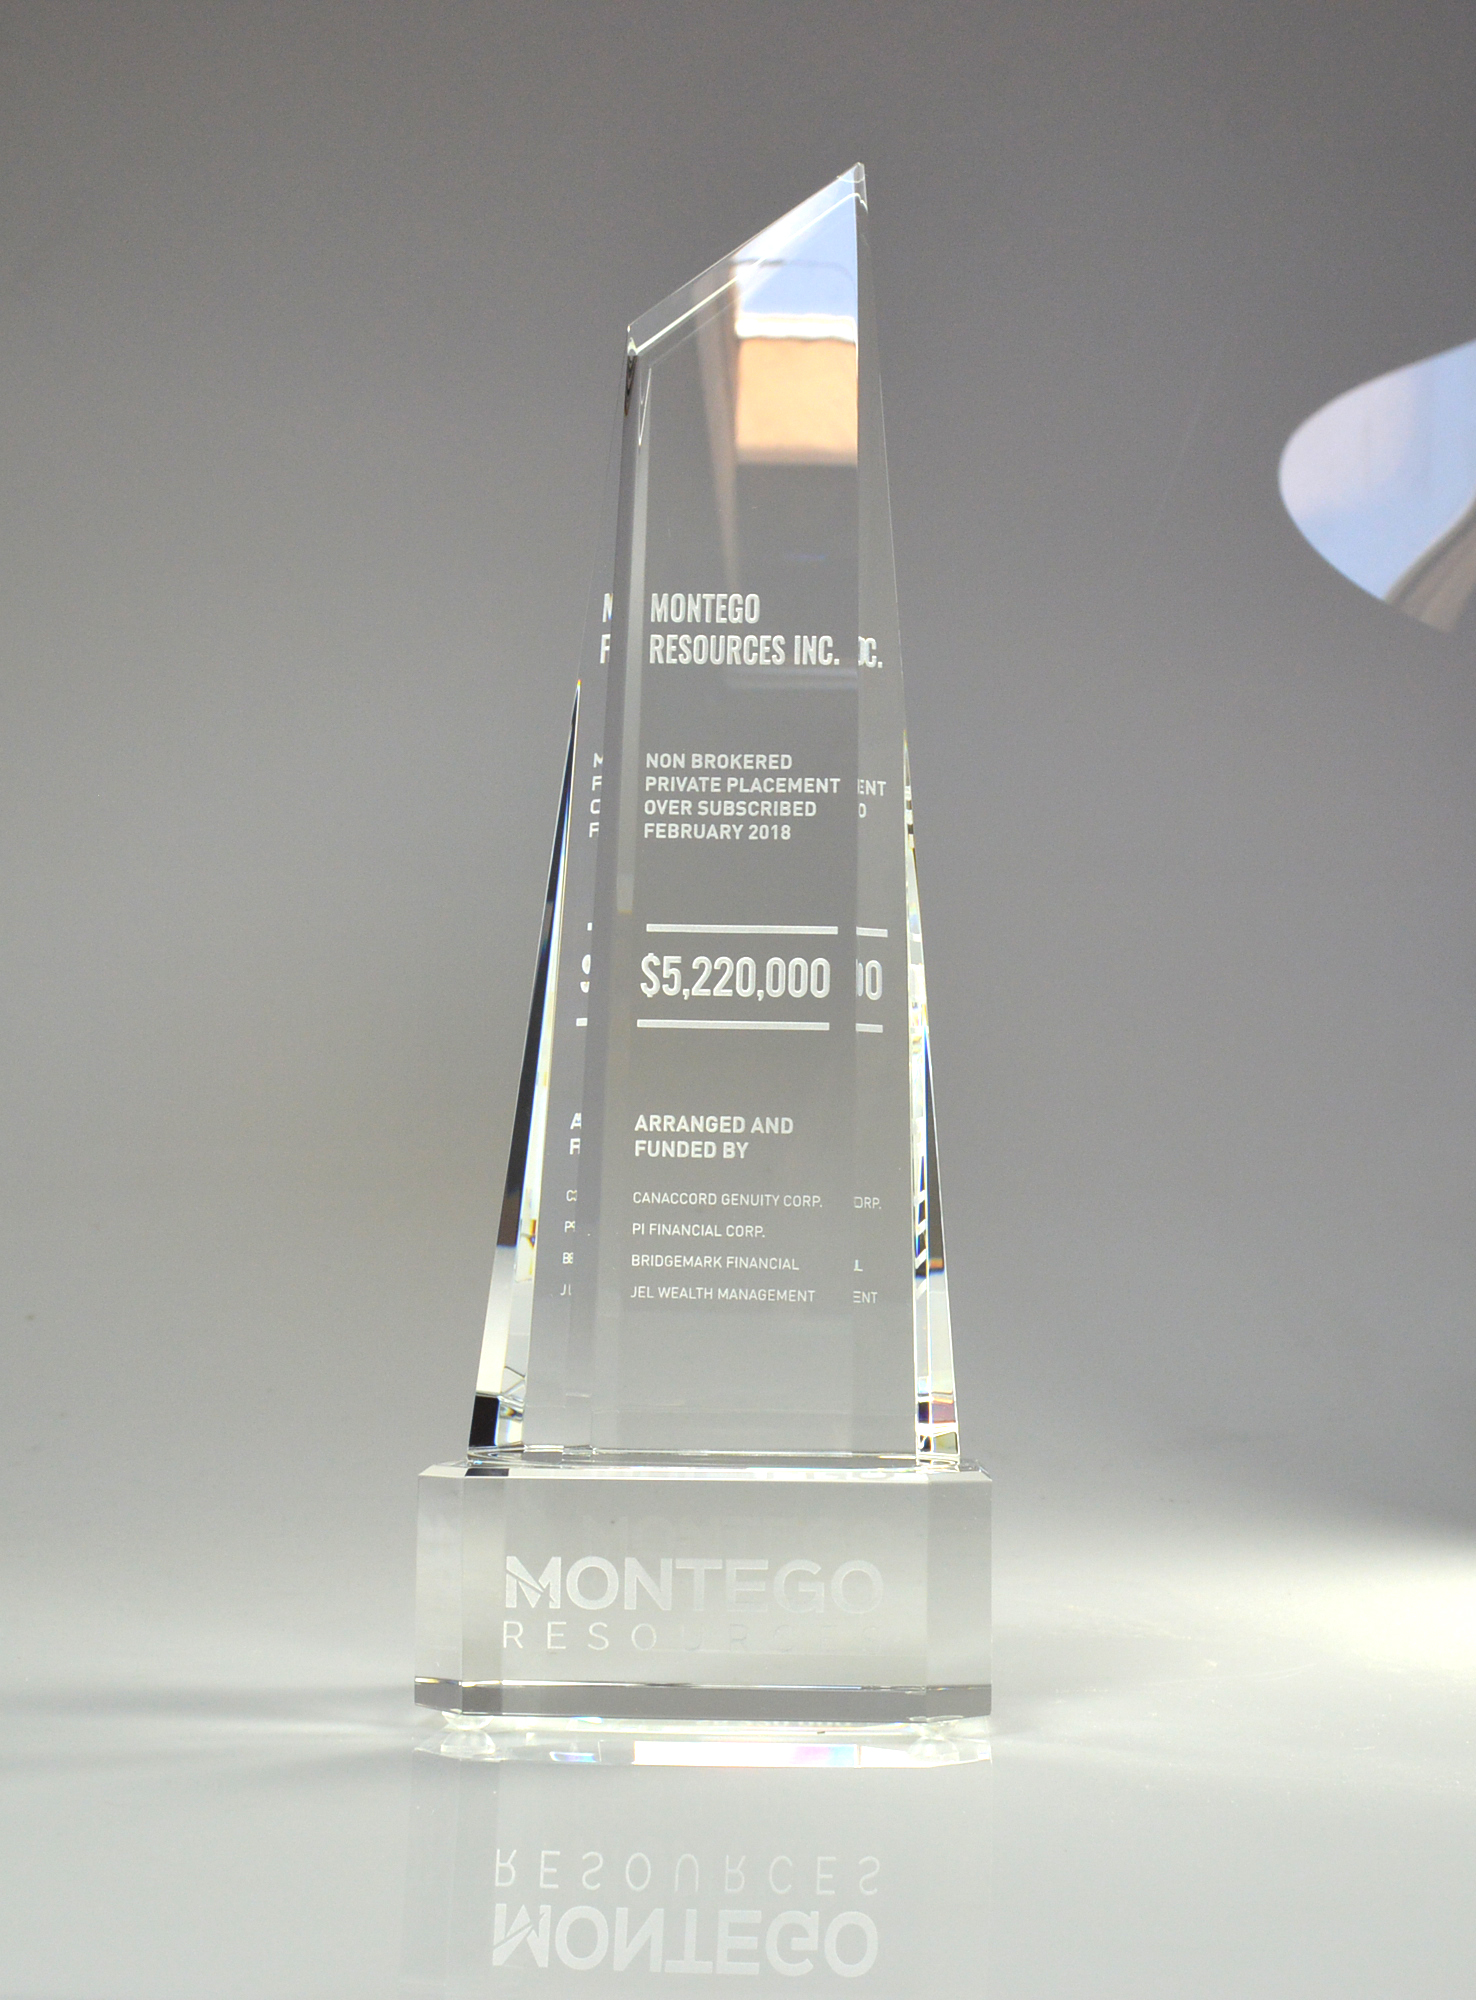 Montego Resources - Crystal Elation Award